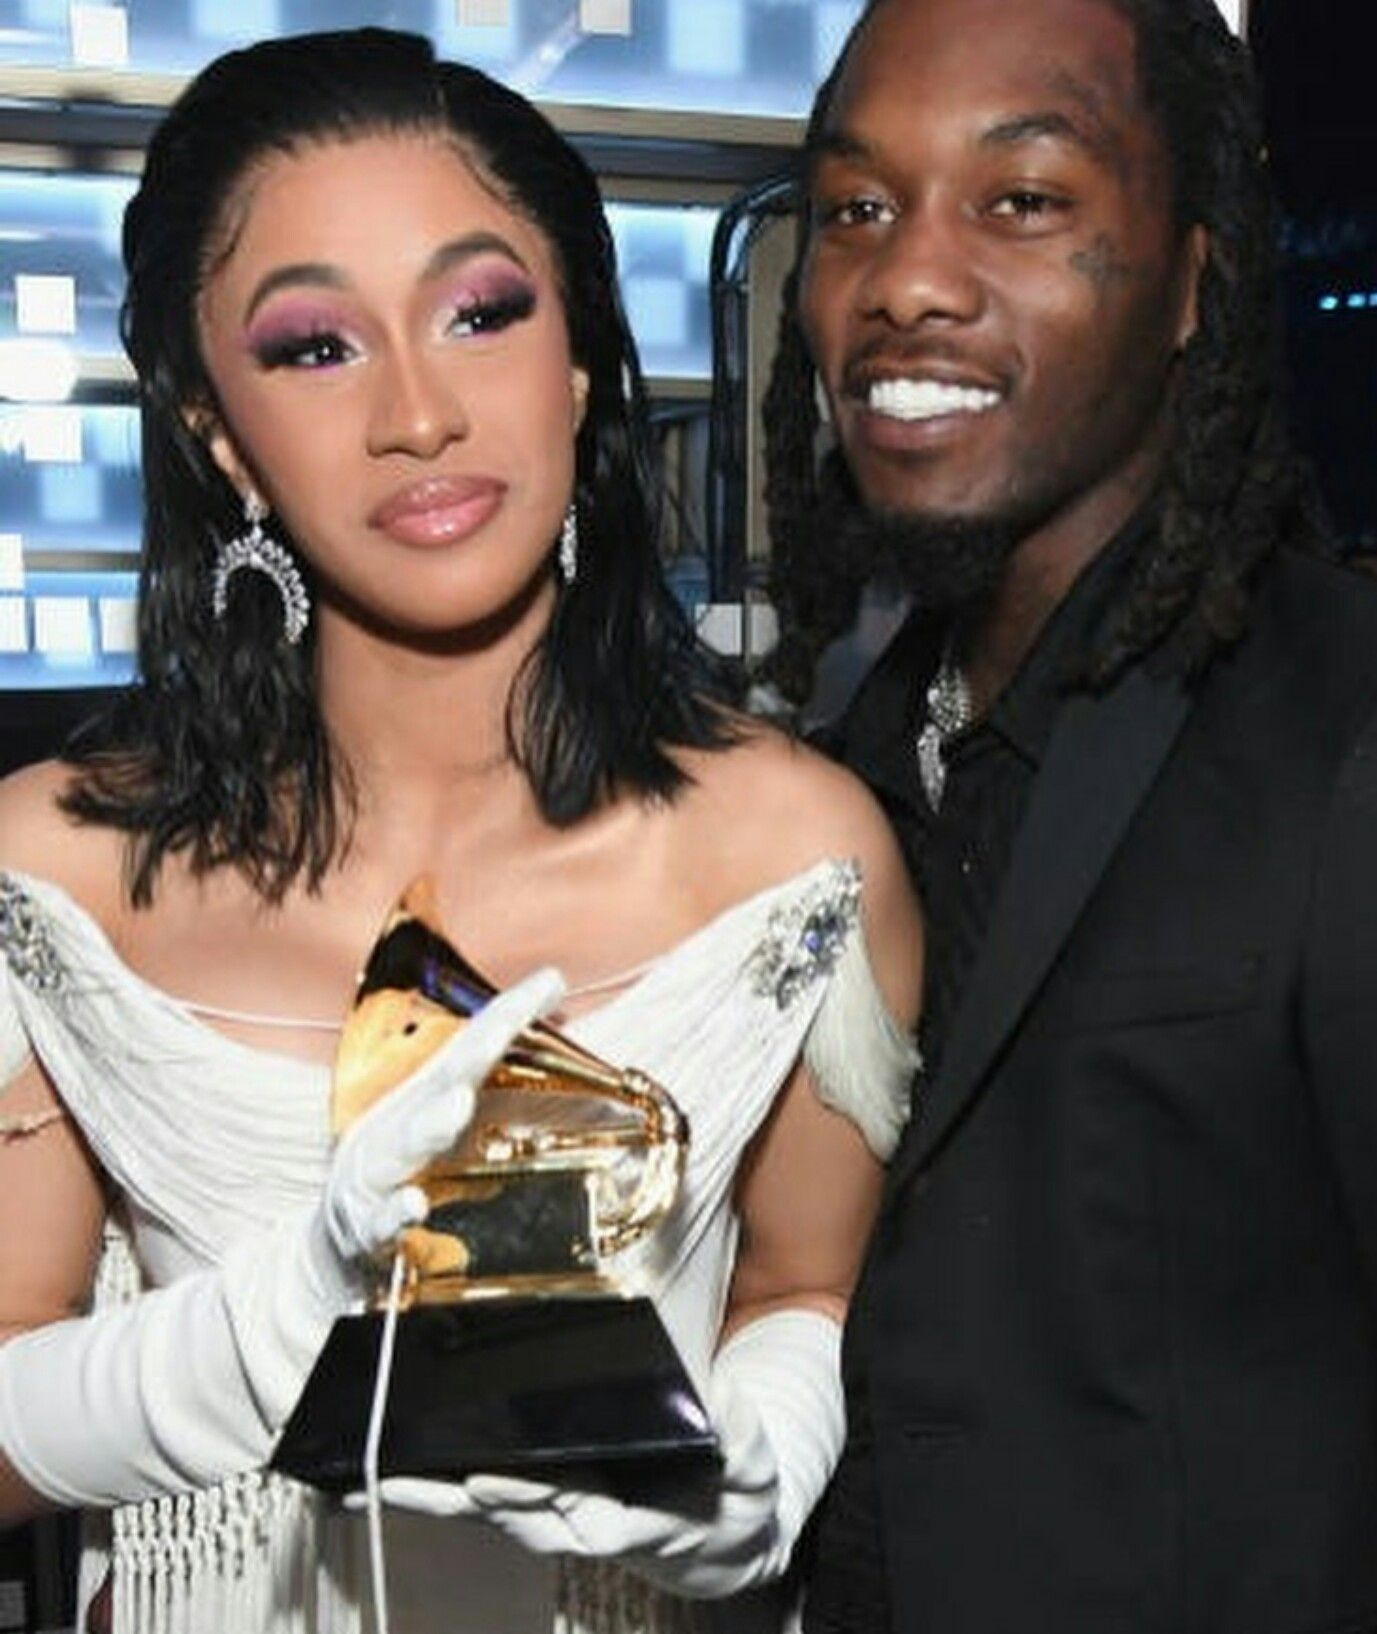 Model Sues Rapper Cardi B Over Naughty Album Cover: Pin By Karen Taylor On Cardi B (With Images)